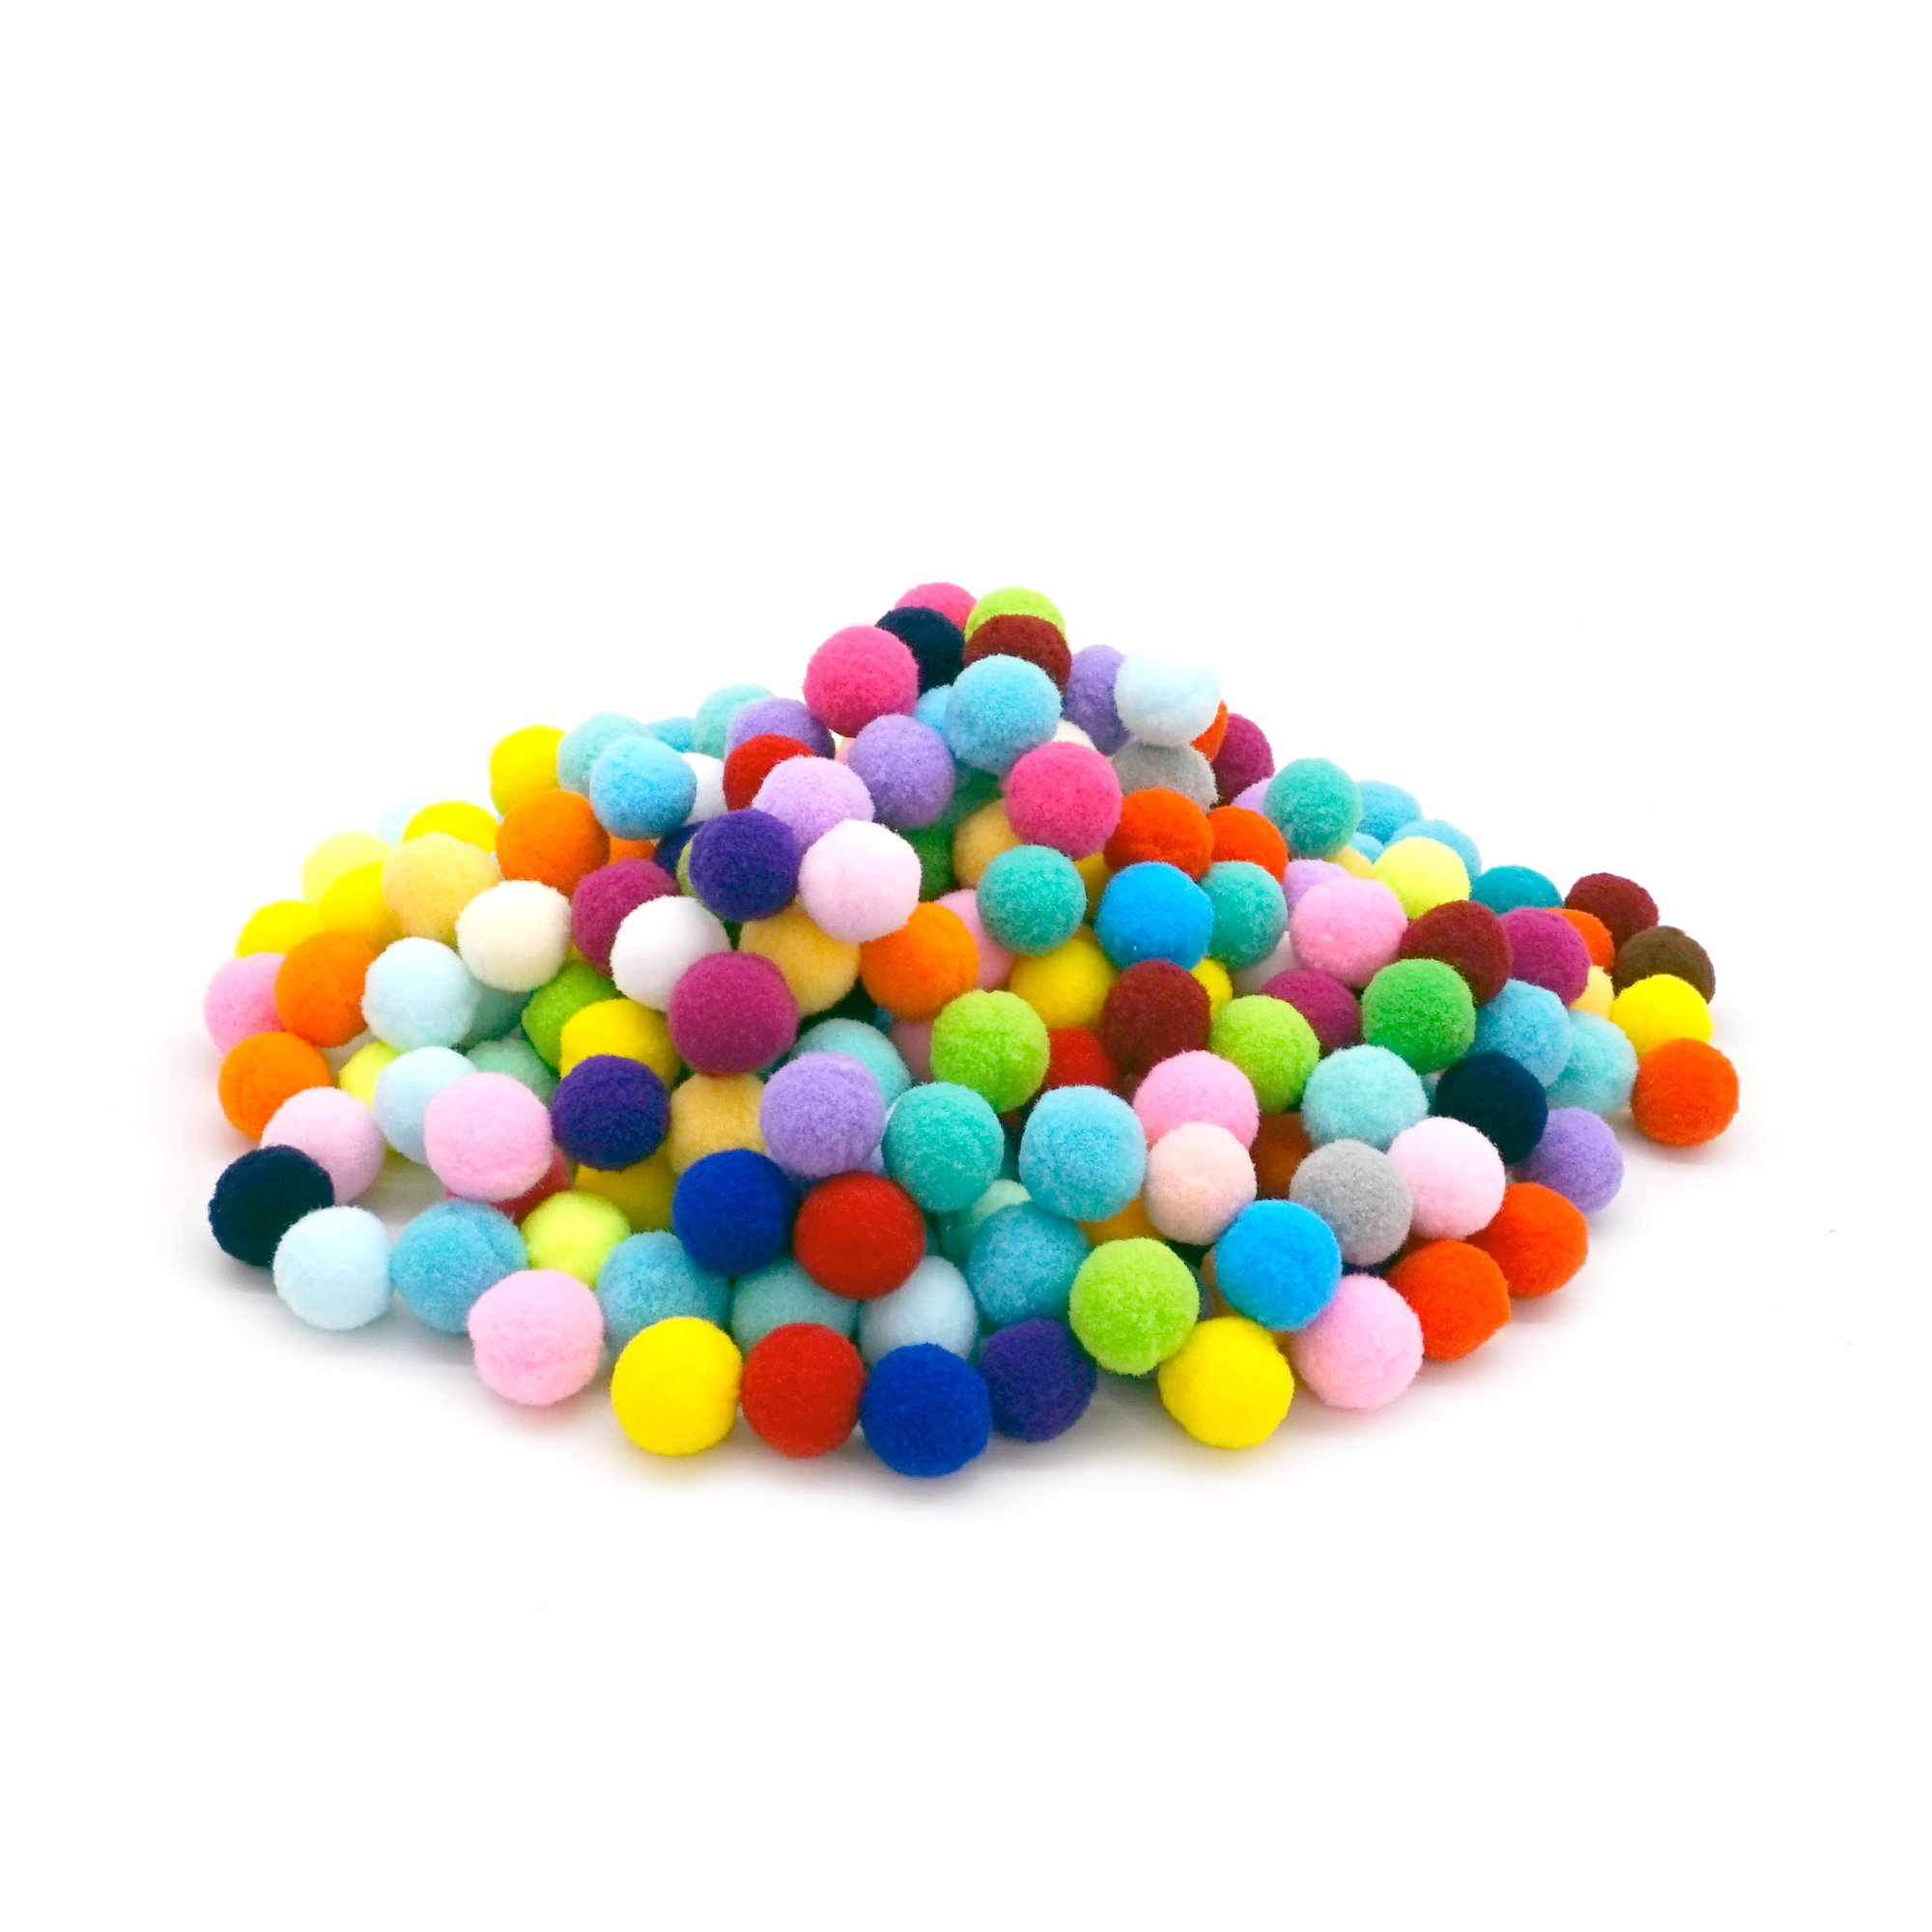 Pom Poms Craft Assorted Colors or Hobby Supplies and DIY Creative Crafts Decorations, 1 Inch Round Pack of 250